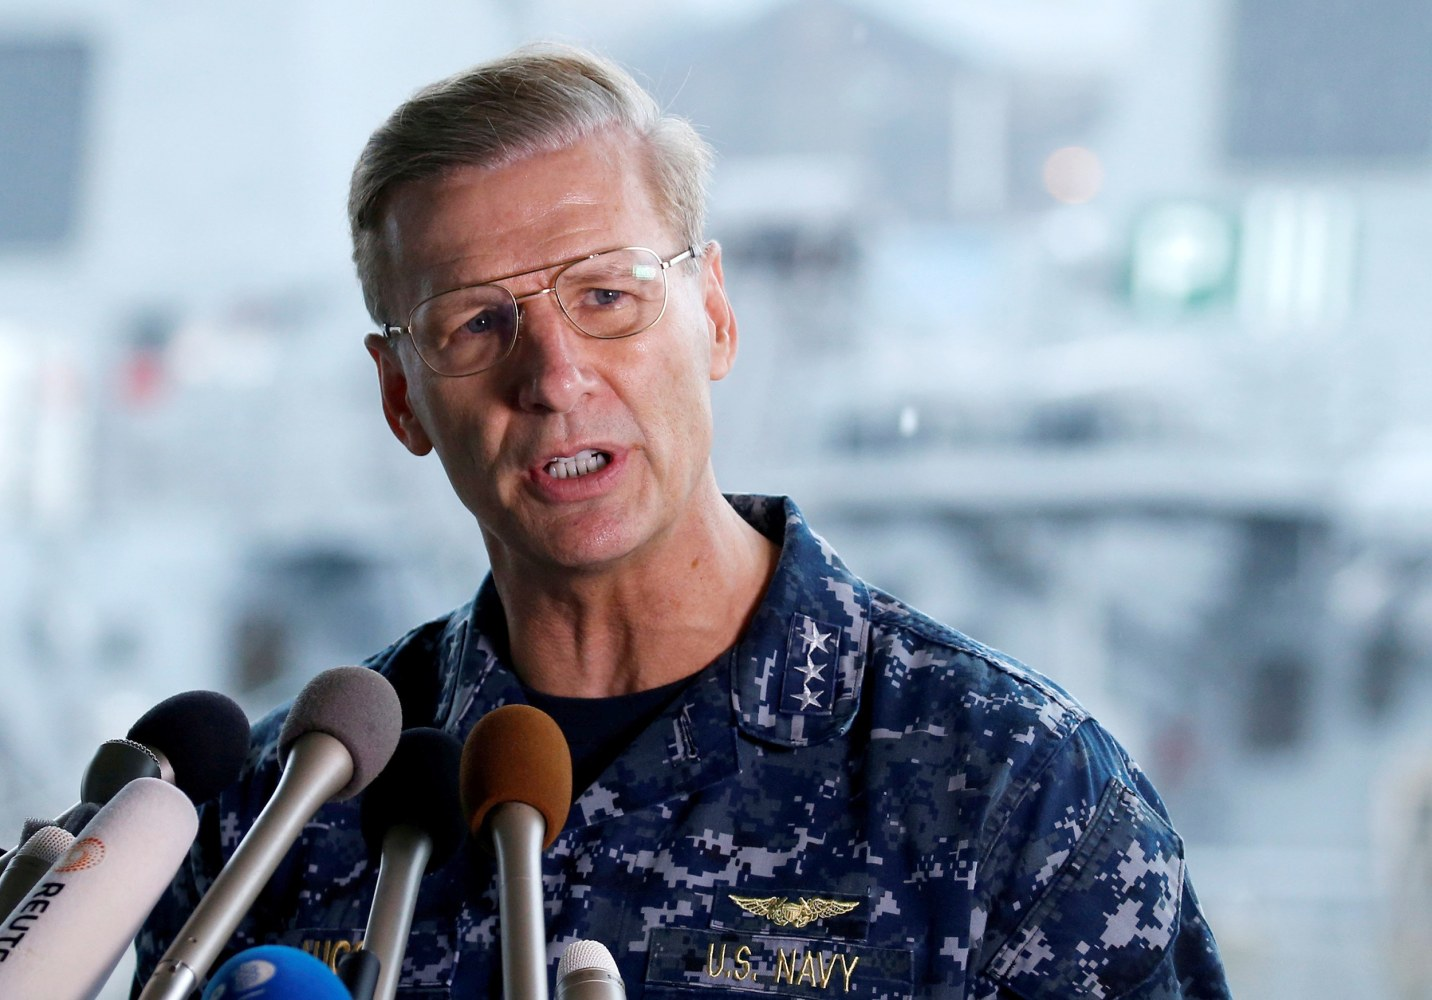 Navy dismisses 7th Fleet commander after another mishap